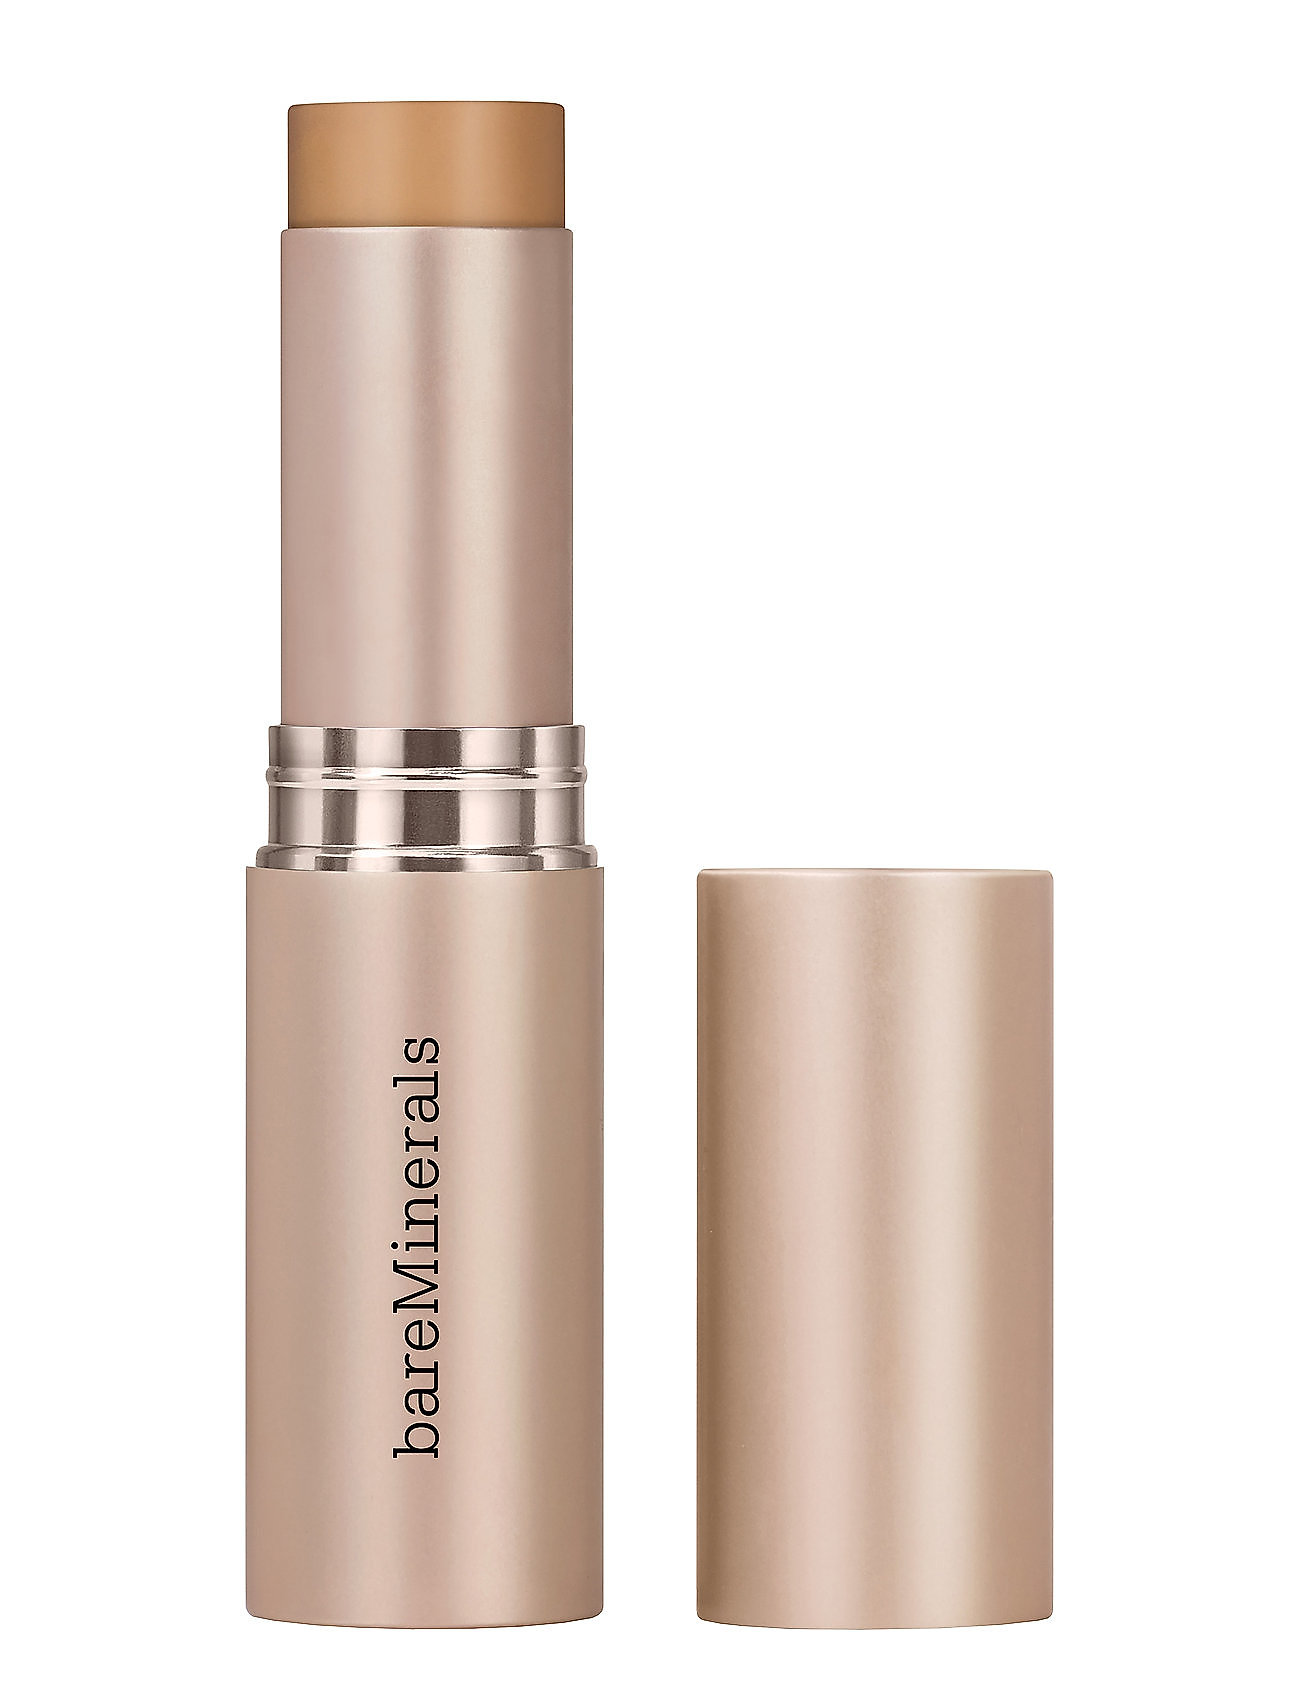 Image of Complexion Rescue Hydrating Foundation Stick Spf 25 Foundation Makeup BareMinerals (3250586909)